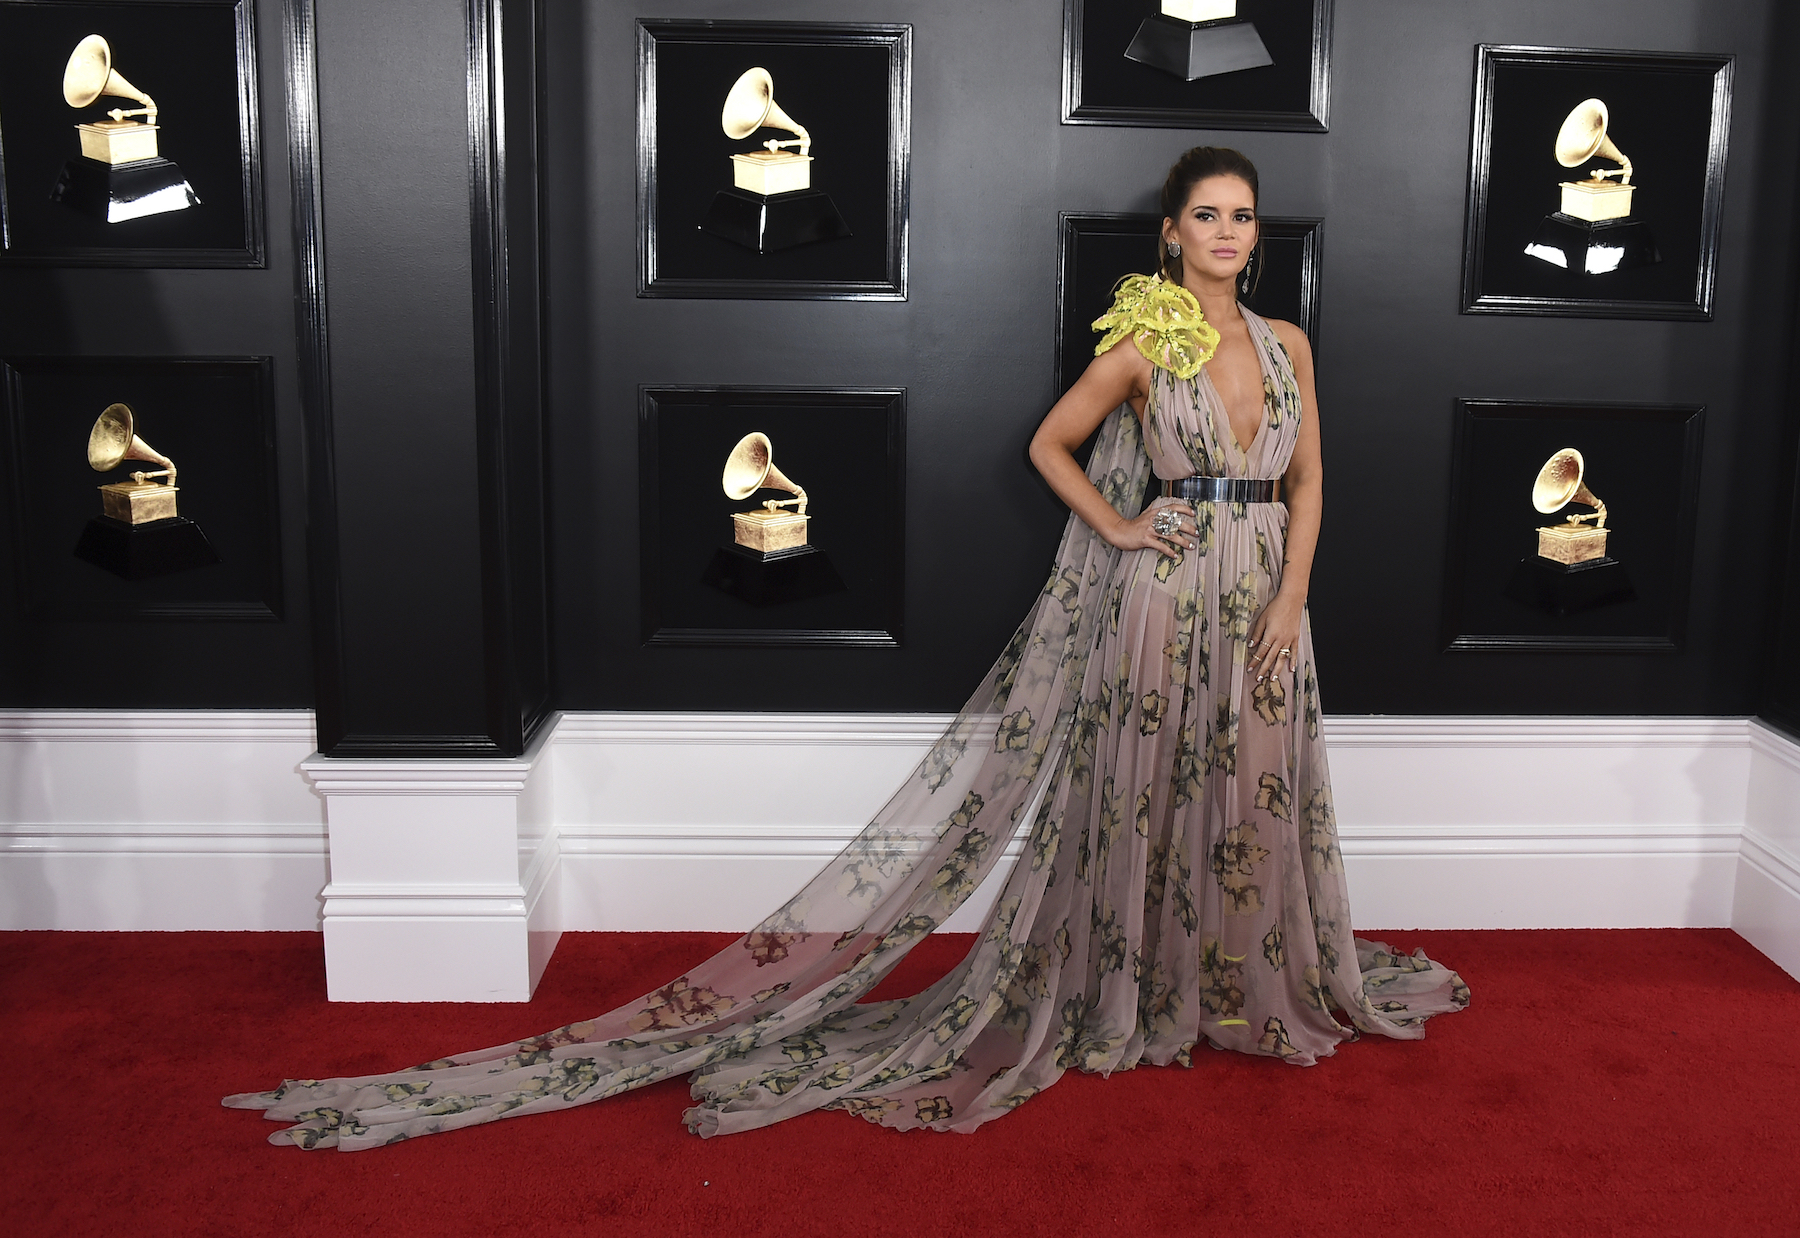 "<div class=""meta image-caption""><div class=""origin-logo origin-image ap""><span>AP</span></div><span class=""caption-text"">Maren Morris arrives at the 61st annual Grammy Awards at the Staples Center on Sunday, Feb. 10, 2019, in Los Angeles. (Jordan Strauss/Invision/AP)</span></div>"